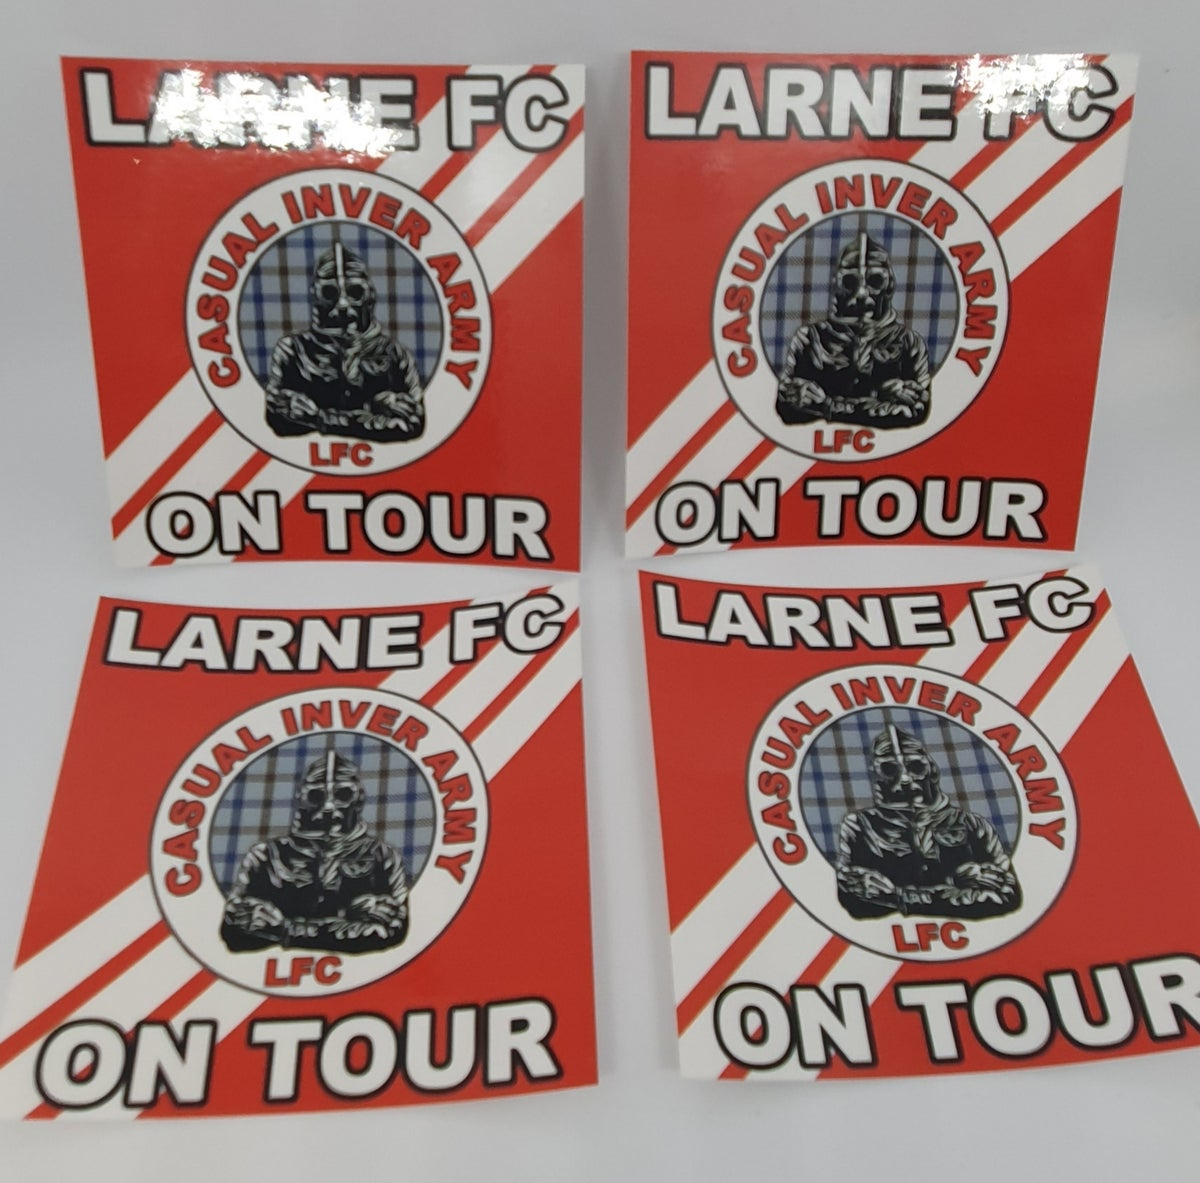 Pack of 25 7x7cm Larne CIA on Tour football/ultras stickers.